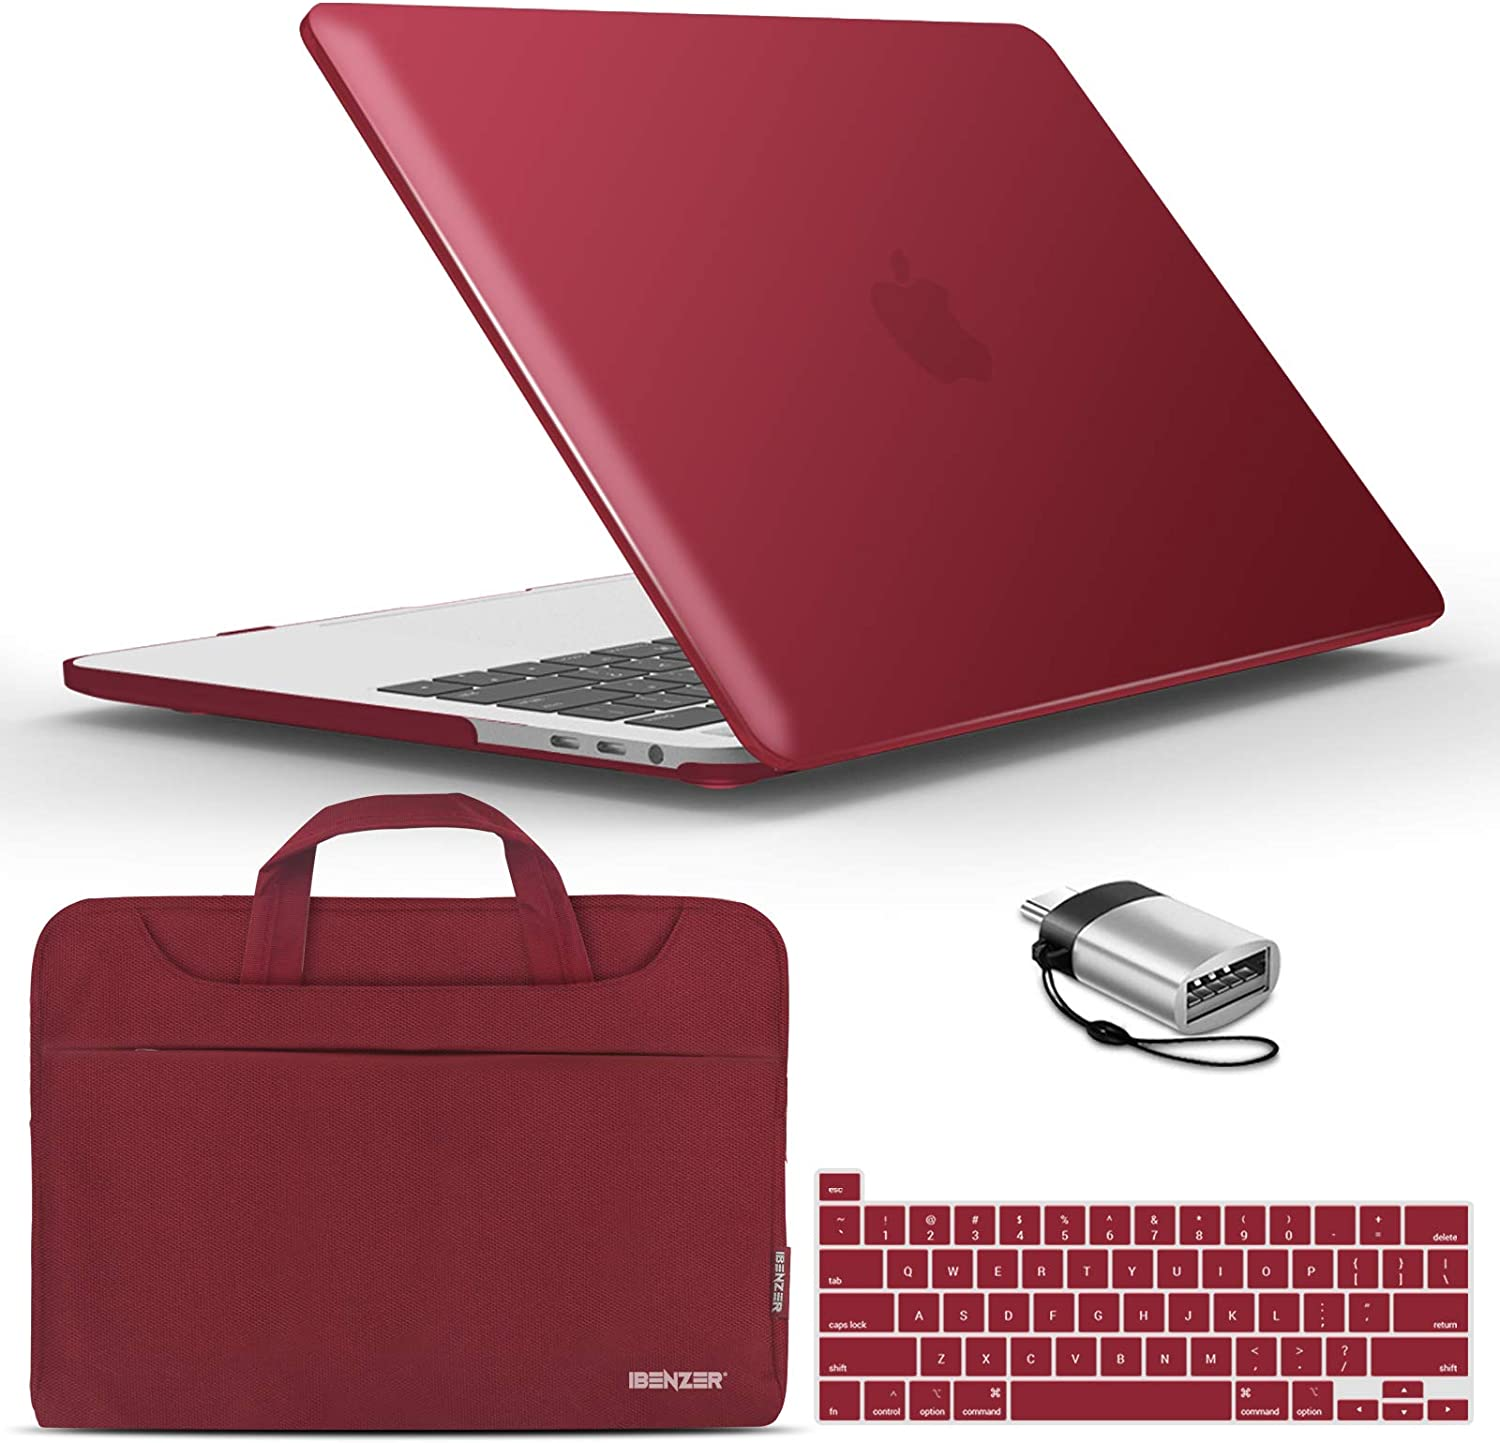 IBENZER New 2020 MacBook Pro 13 Inch Case M1 A2338 A2289 A2251 A2159 A1989 A1706 A1708, Hard Shell Case&Bag&Keyboard Cover&Type C for Apple Pro 13 with Touch Bar (2020-2016), Wine Red, T13-WR+3